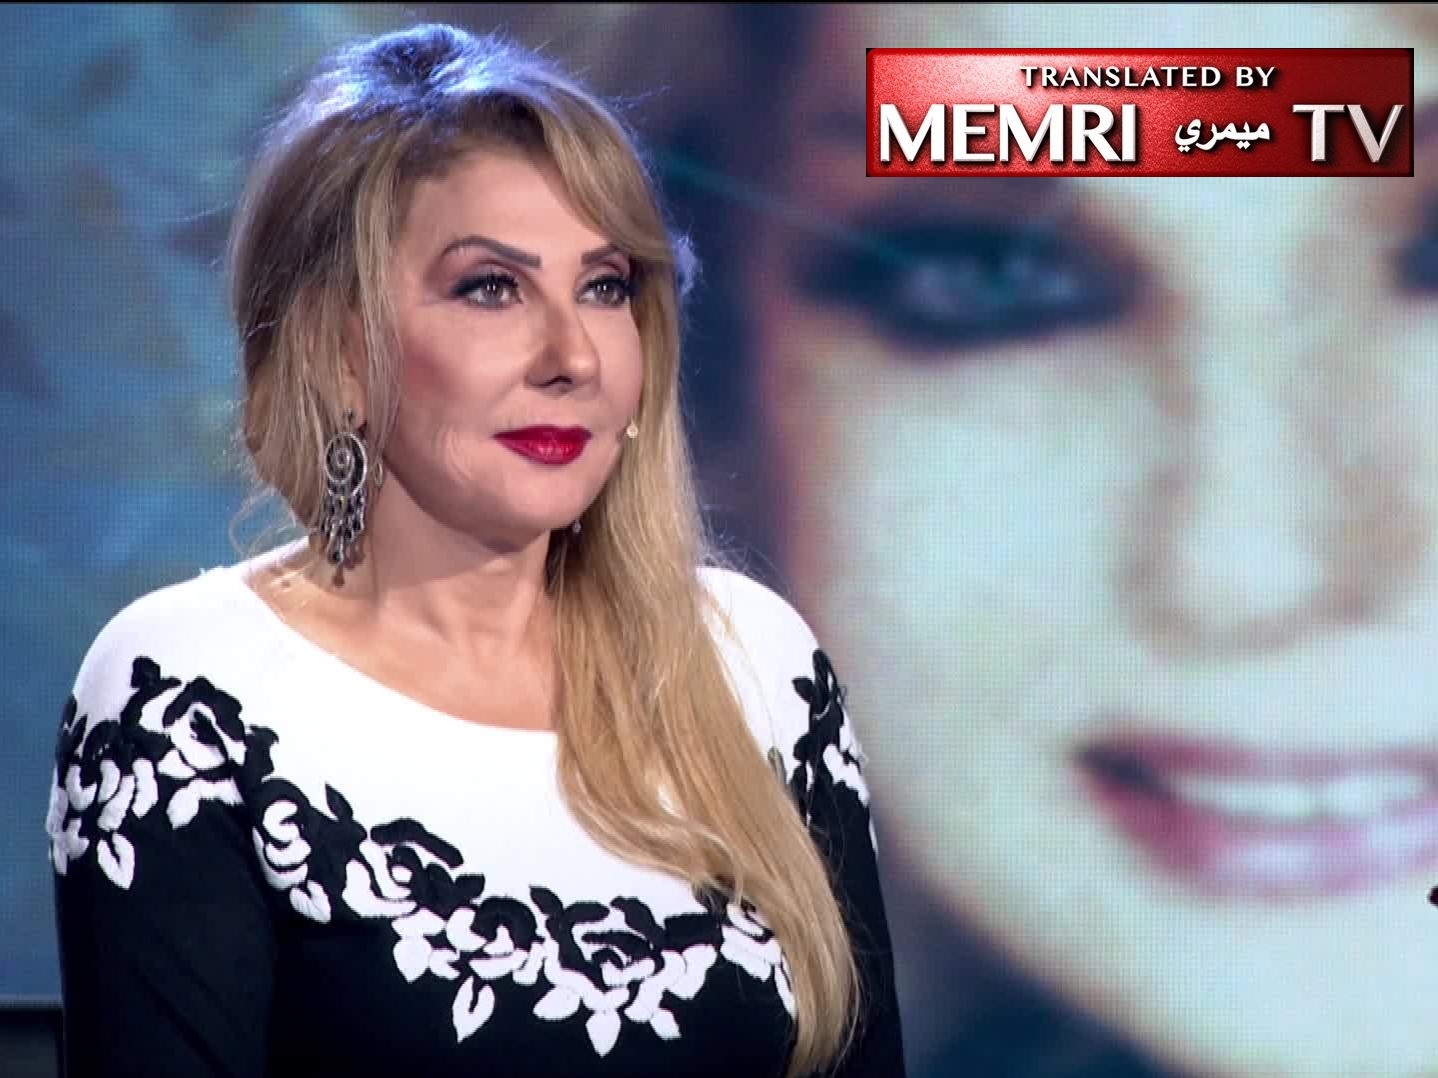 Egyptian Actress Nadia El Gendy: Social Media is a Jewish Industry for the Destruction of Countries